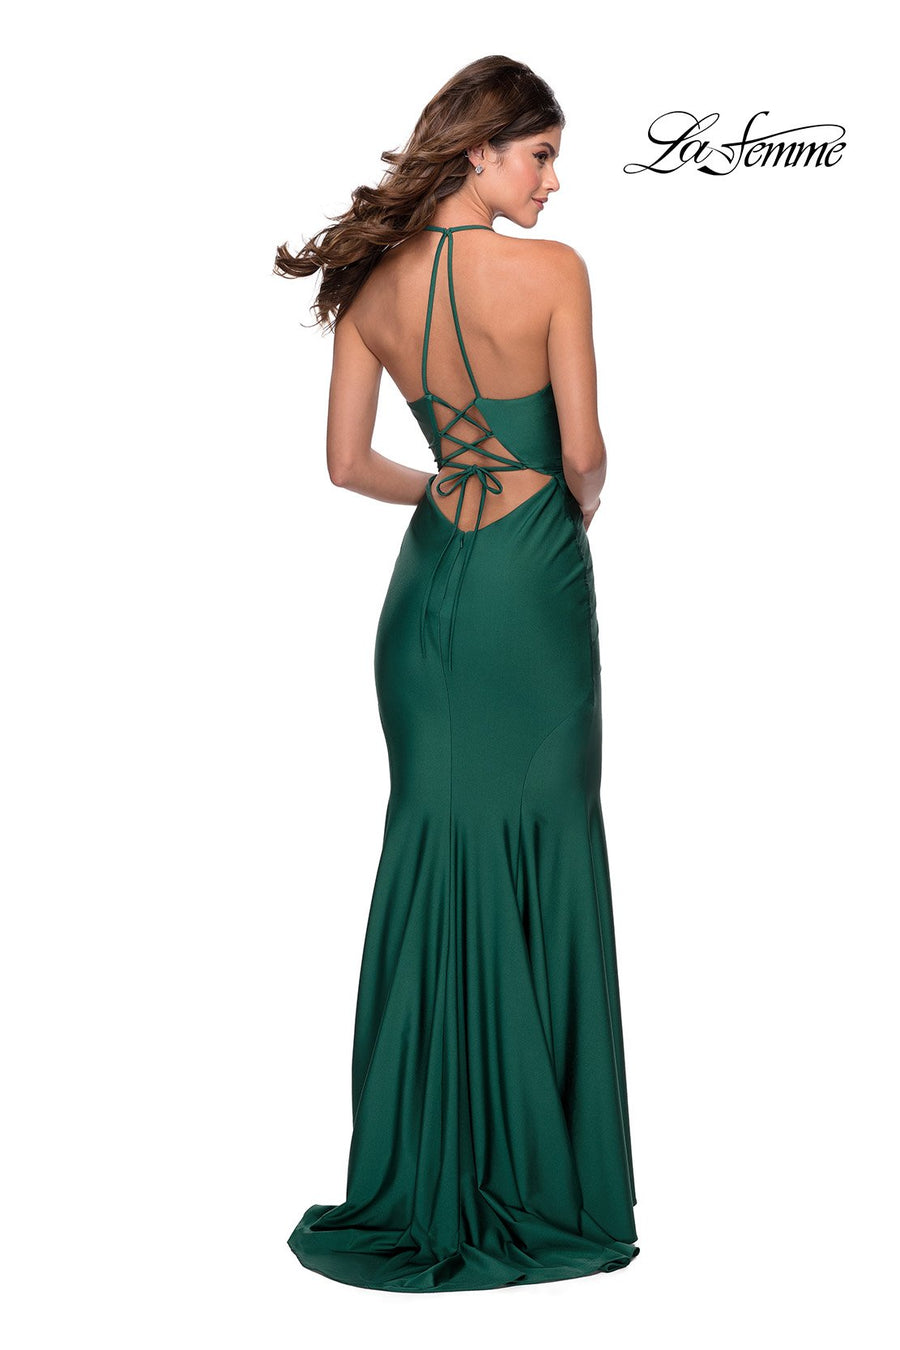 La Femme 28552 prom dress images.  La Femme 28552 is available in these colors: Black, Burgundy, Emerald.